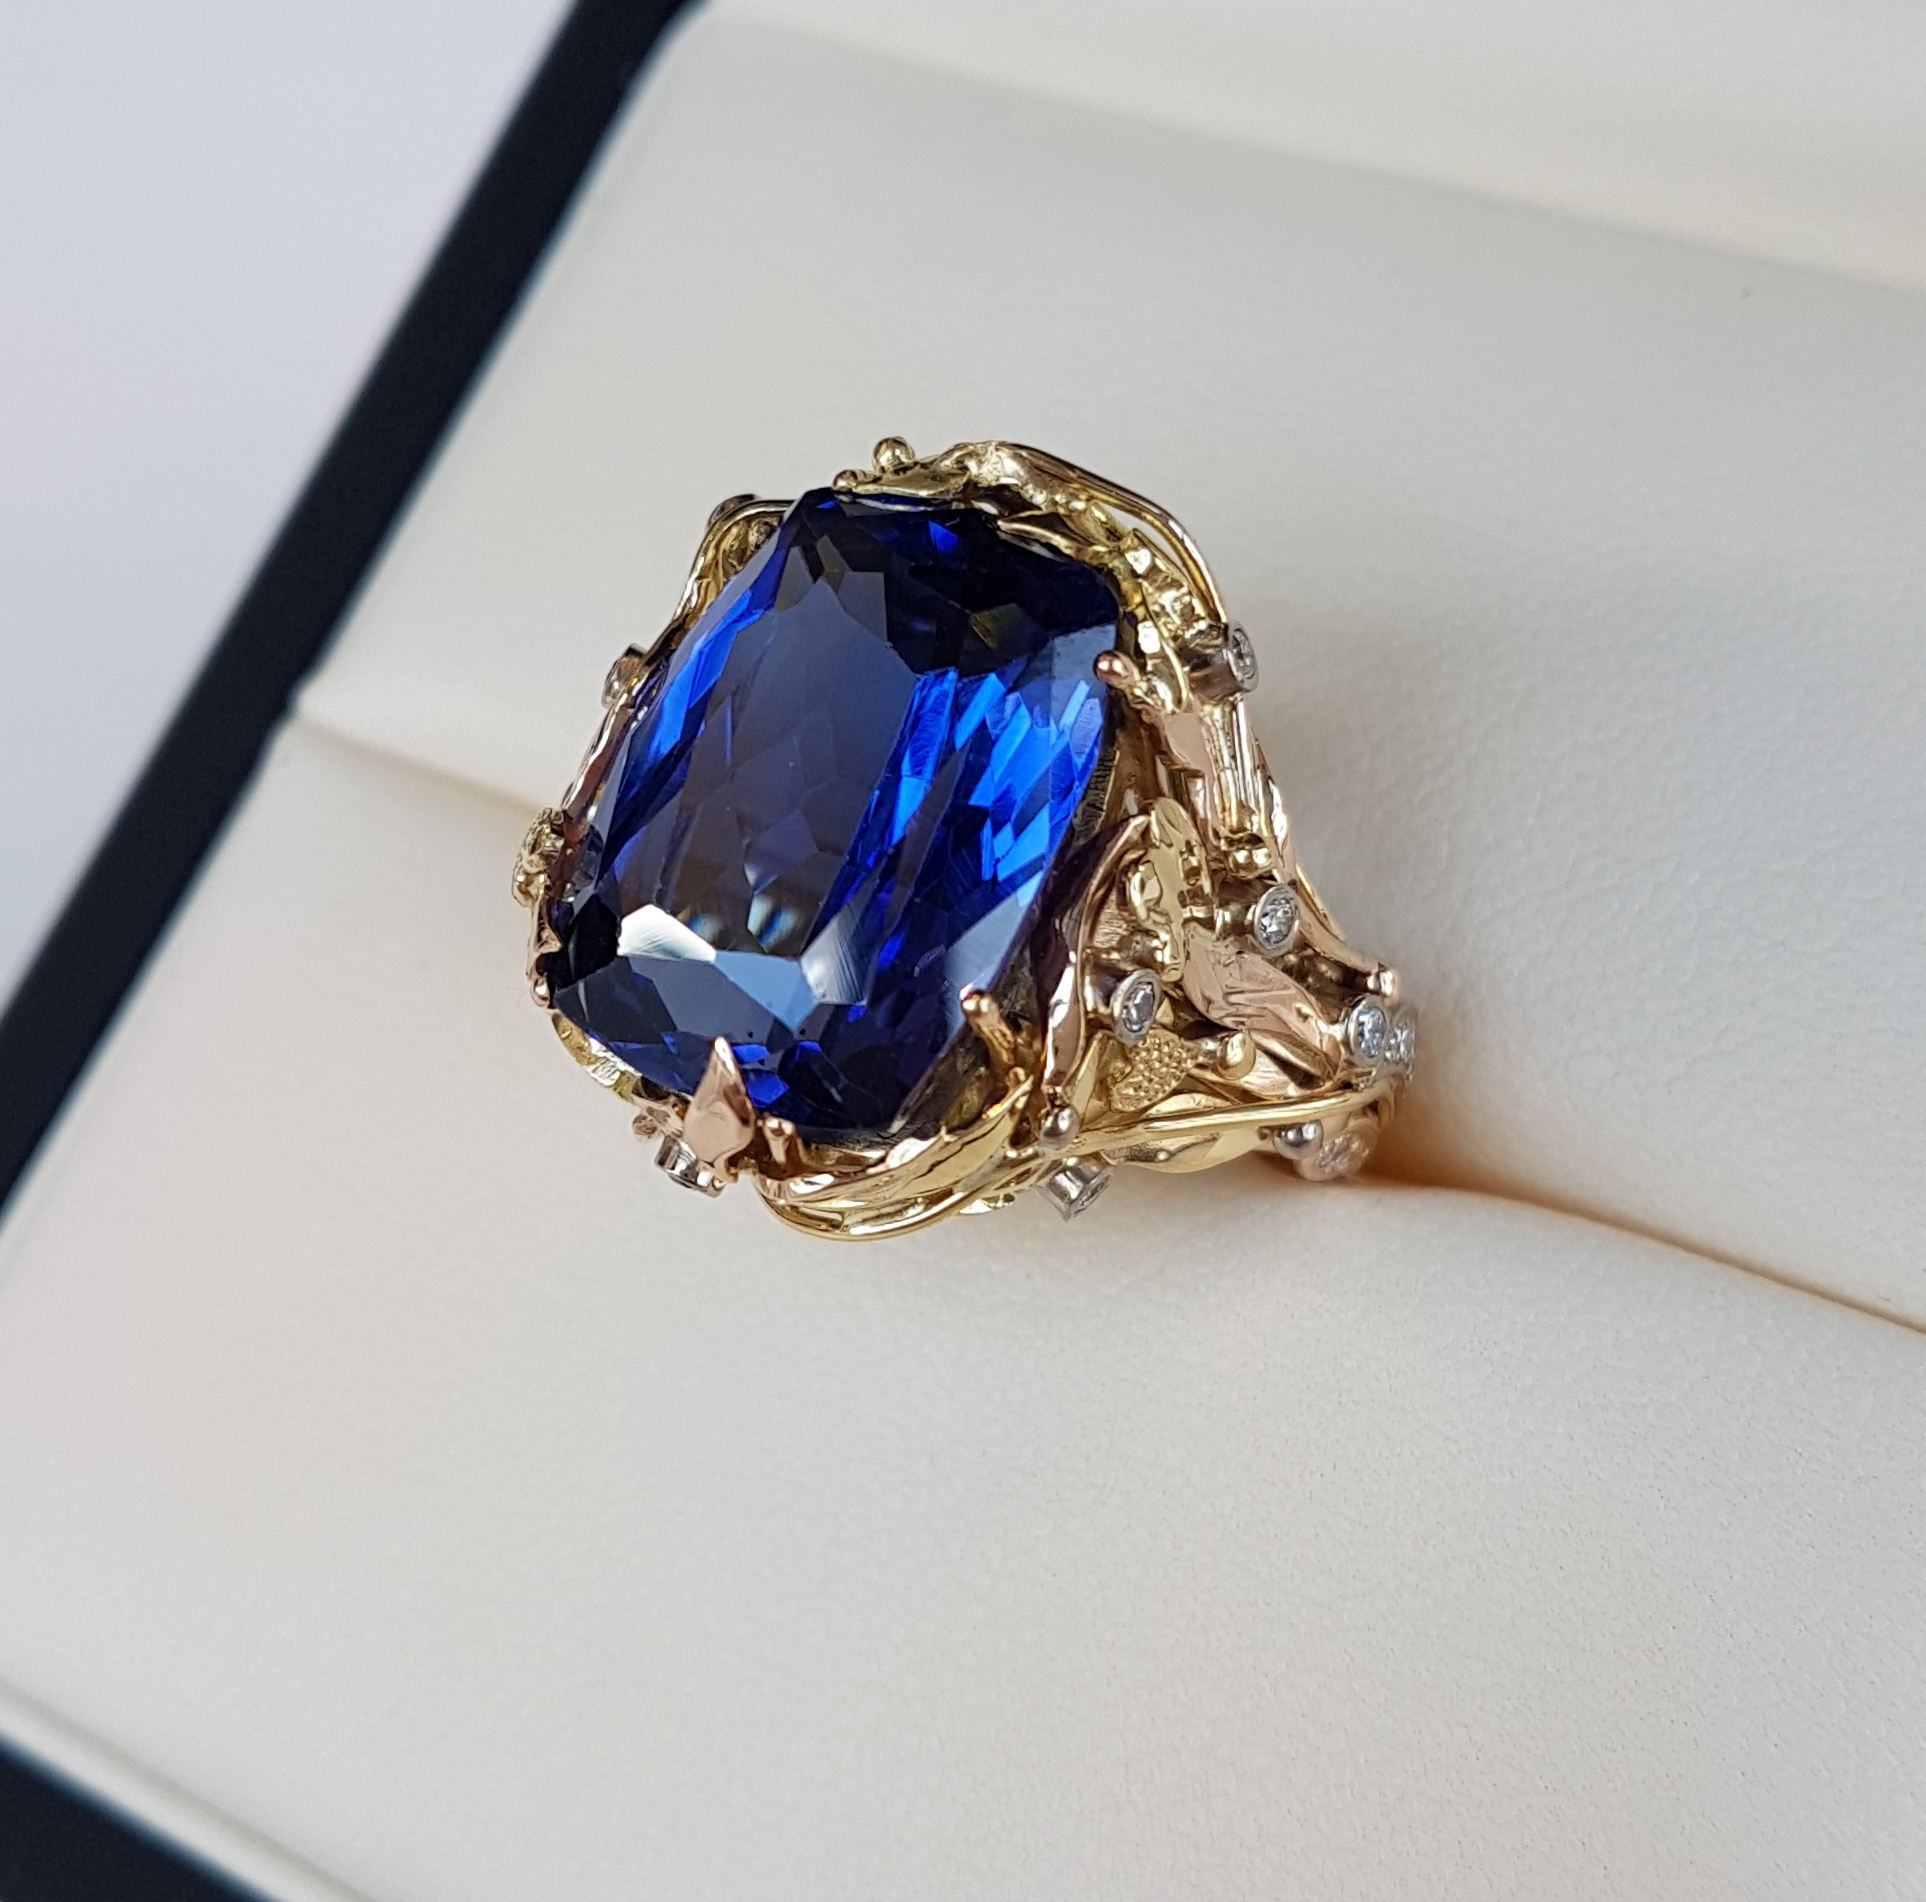 17ct of top colour Tanzanite and diamond ring in 18ct yellow and red gold made in QVJ signiture style this was a real stunner .Clients own Tanzanite